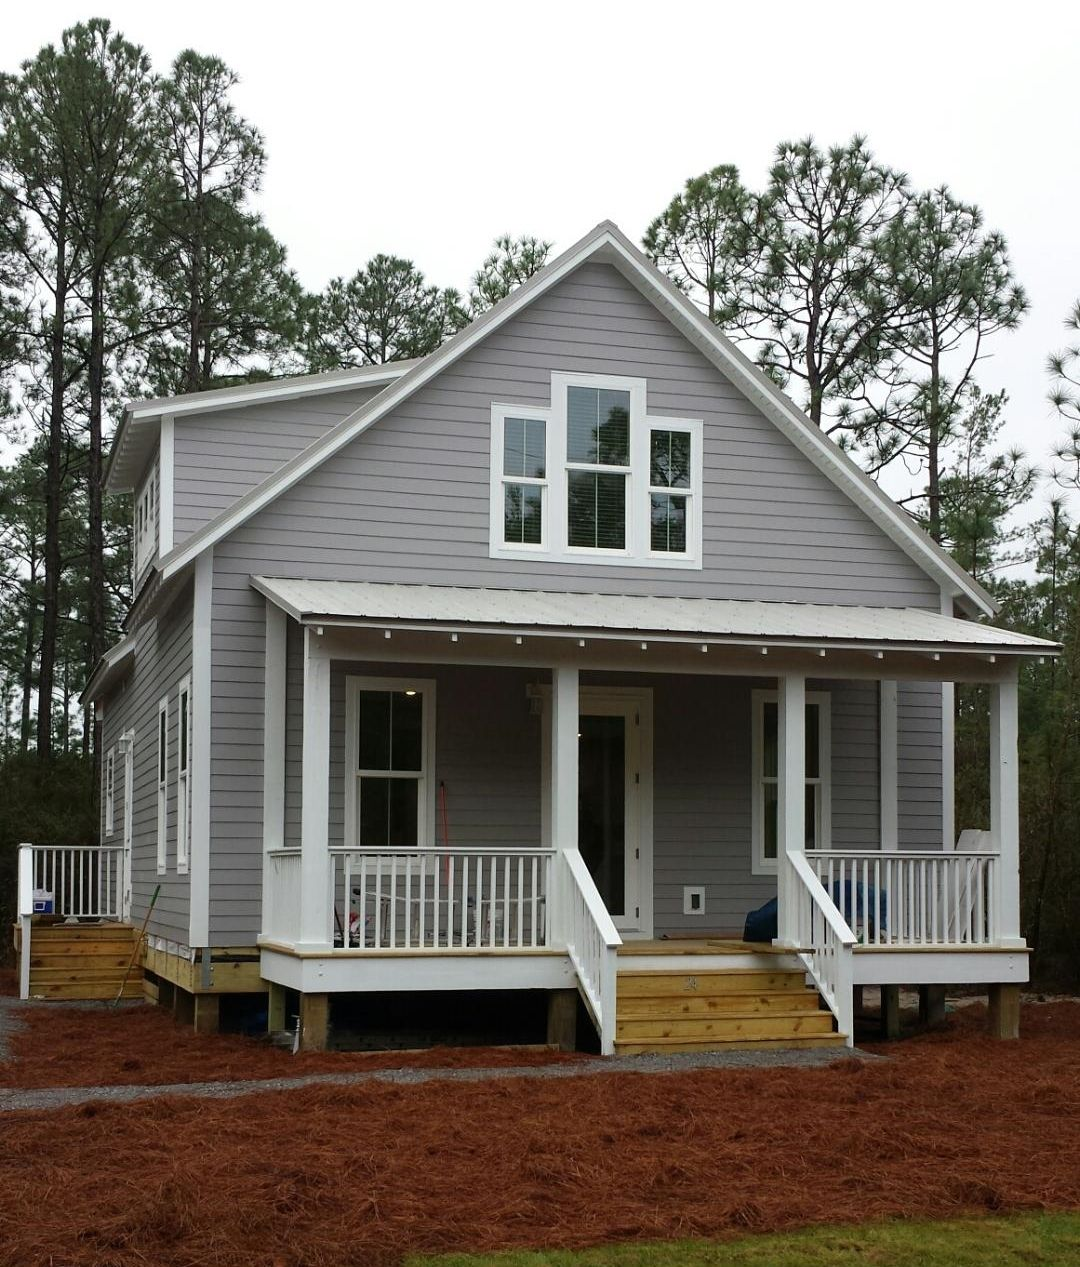 Greenbriar modular home santa rosa beach florida custom for Builder home